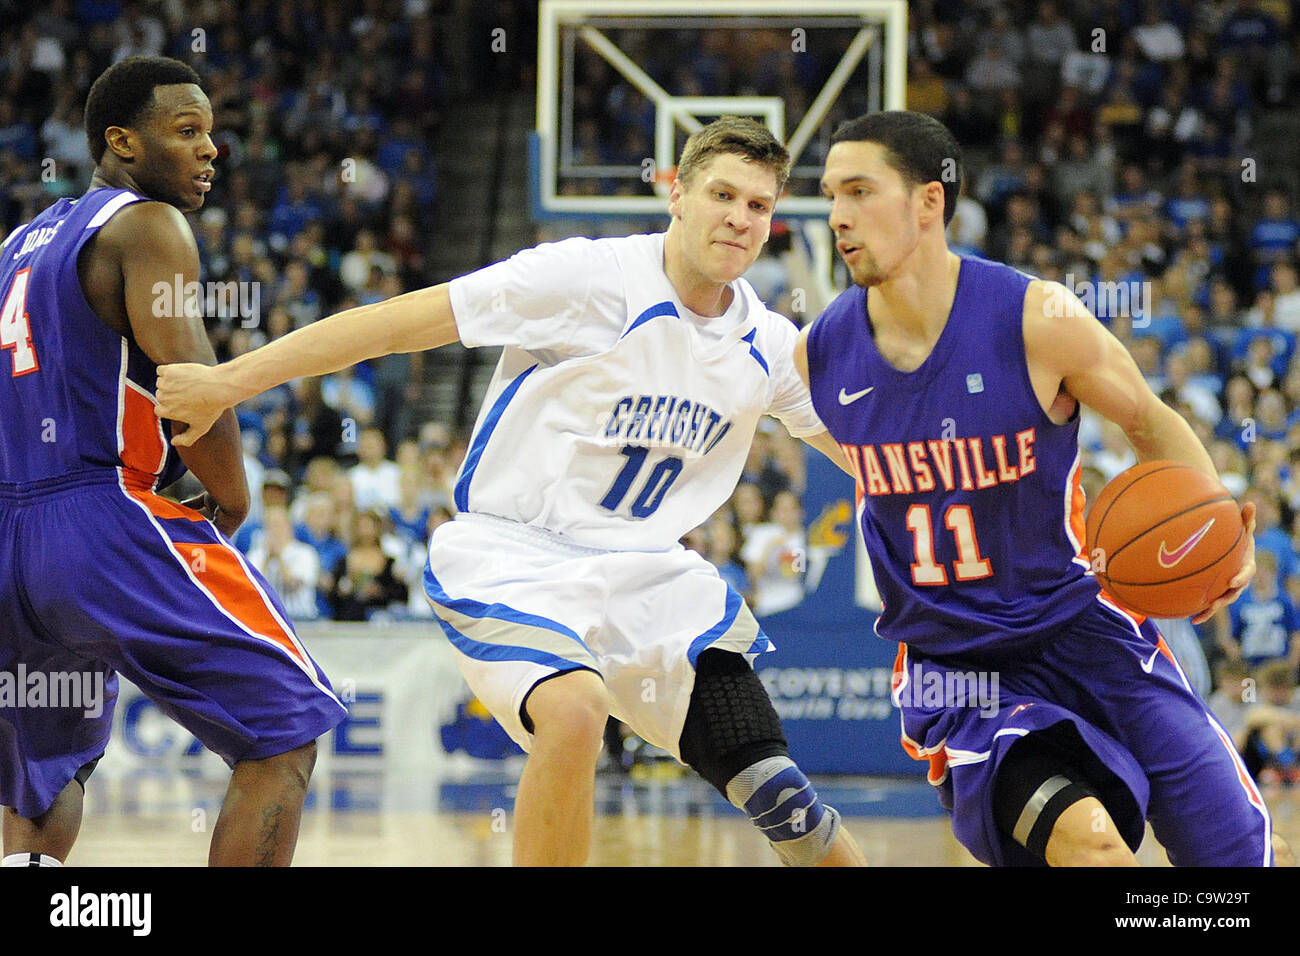 Feb. 21, 2012 - Omaha, Nebraska, U.S - Evansville guard Colt Ryan (11) drives Creighton guard Grant Gibbs (10) into - Stock Image